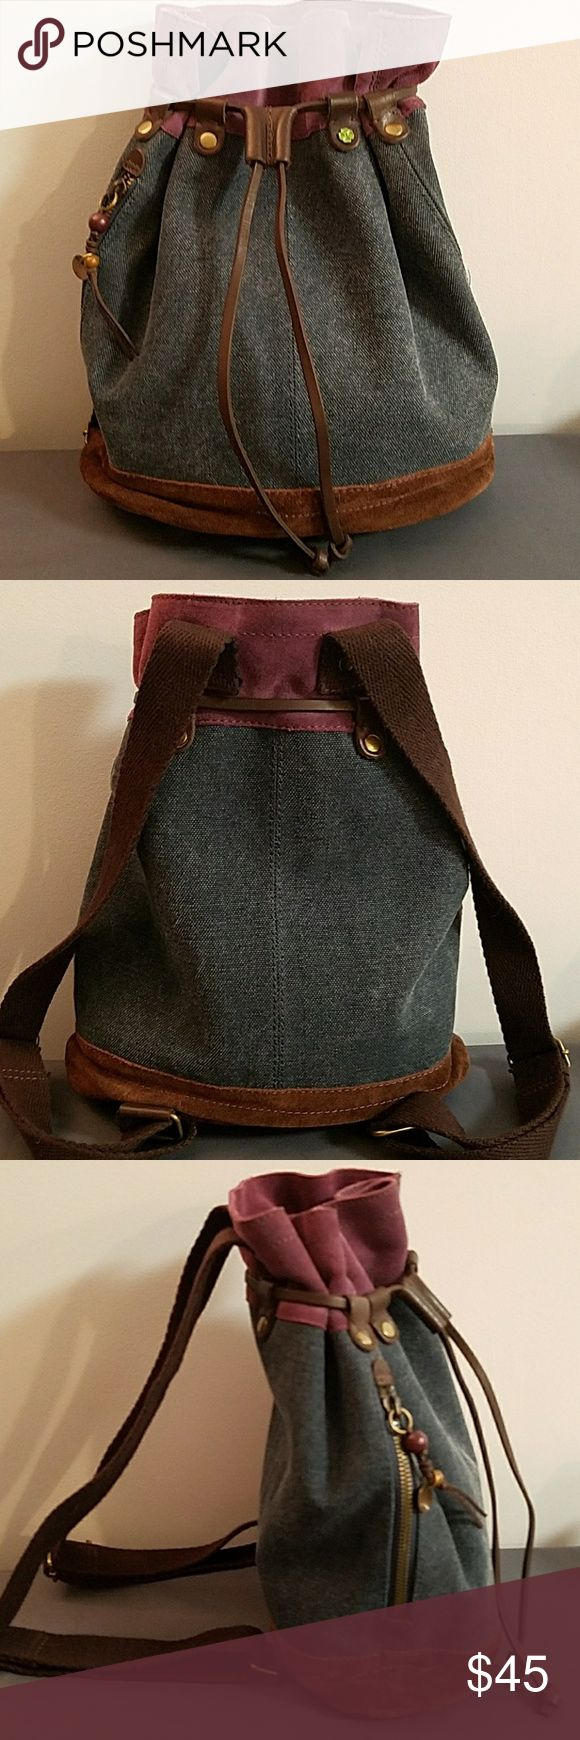 """Lucky Brand Drawstring Backpack Great Condition Really NICE pre-owned condition w/a couple barely noticeable fades. 1-Main Compartment that's fabric lined w/1-zipper pocket& 2-slide pockets on sides. Purple, brown,&denim. Gold tone hardware &the signature shamrock accent! 13""""Wx16""""Tx6.5""""D. @17""""-33"""" adjustable brown cotton straps. We want you to be happy so please ask questions. No bad odors. Sorry, but no trades. Lots of NEW &Pre-Owned Items in our closet so please see our bundle option.Thank…"""